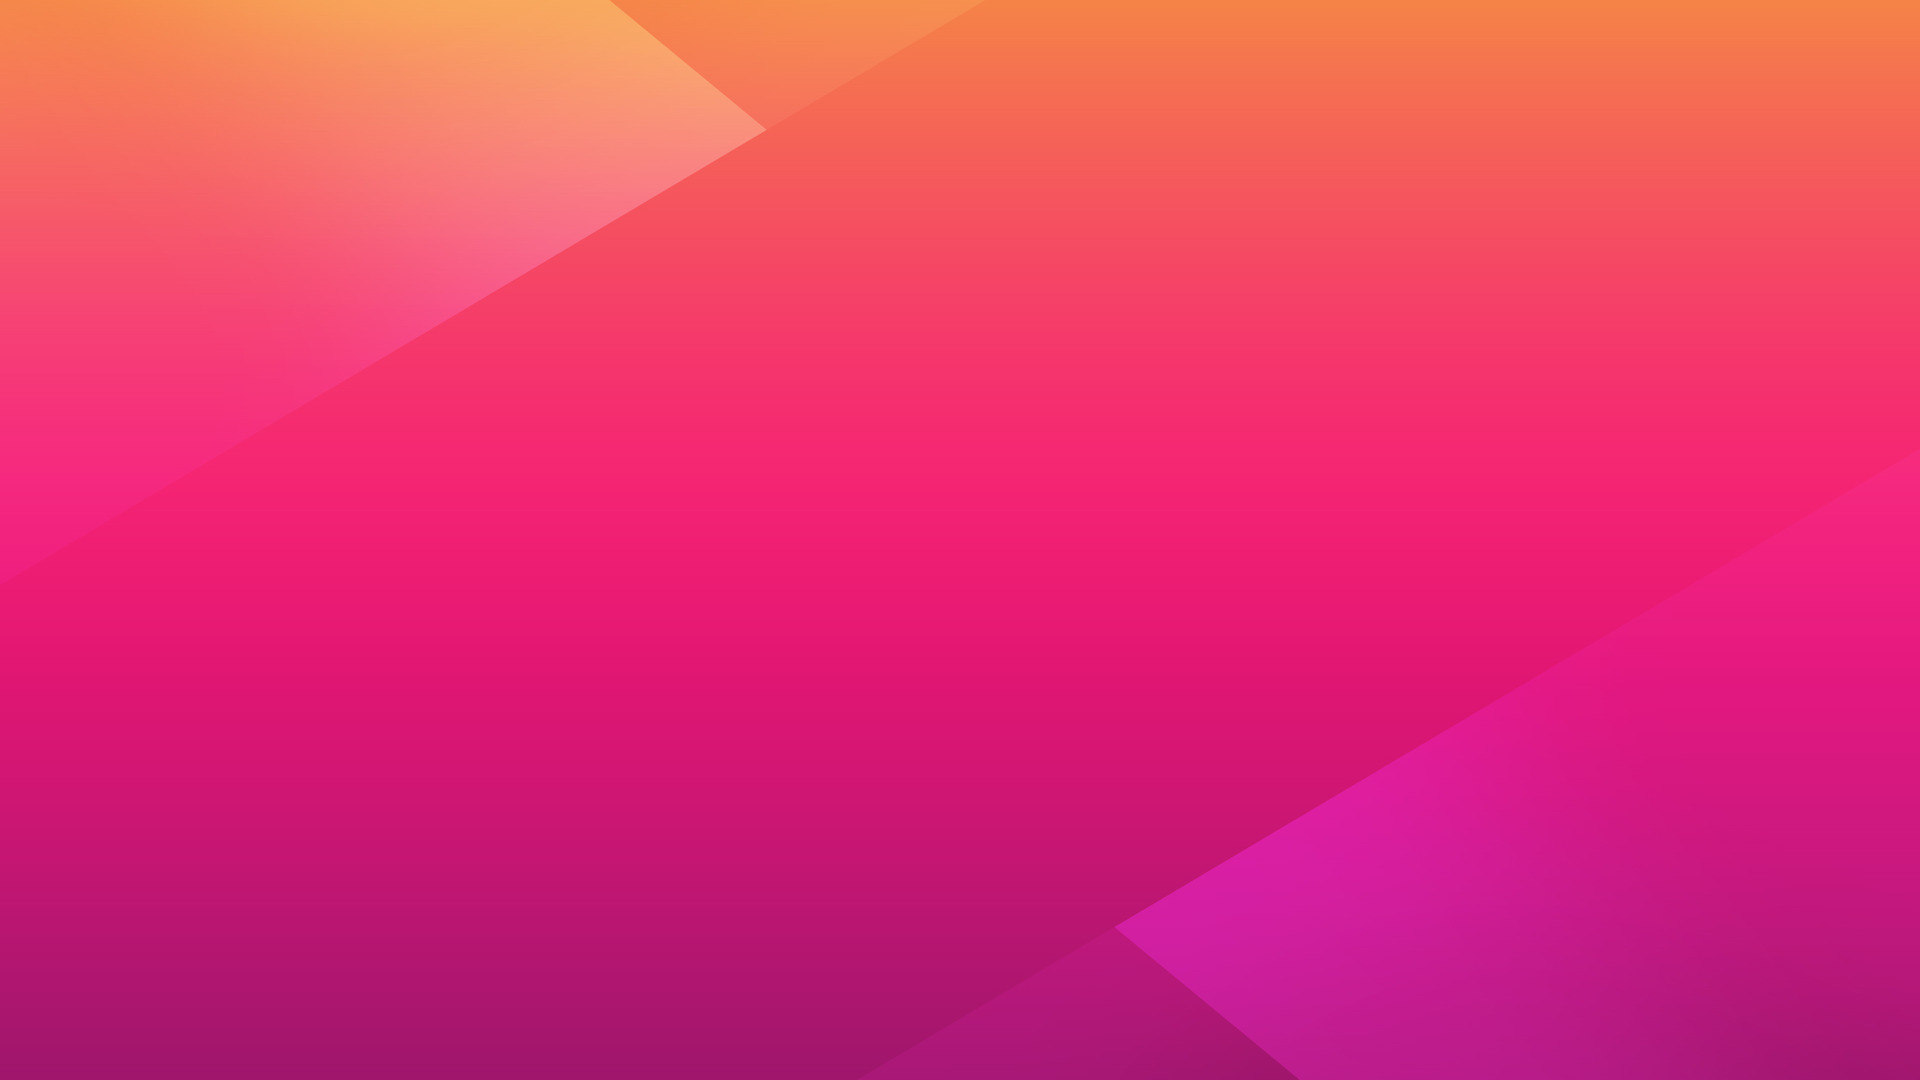 Gradient wallpaper free